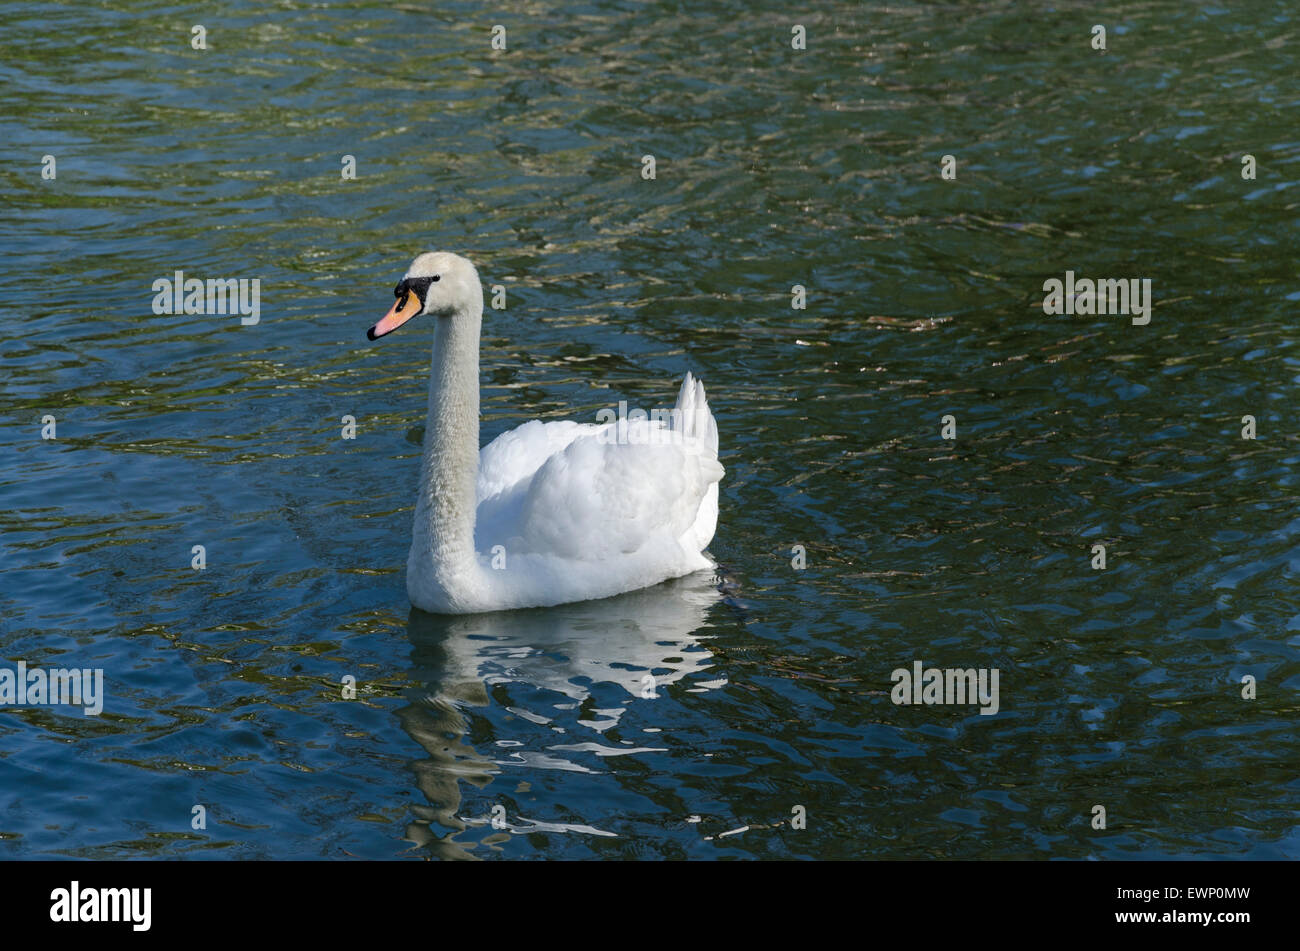 Adult Mute Swan on the River Cam - Stock Image